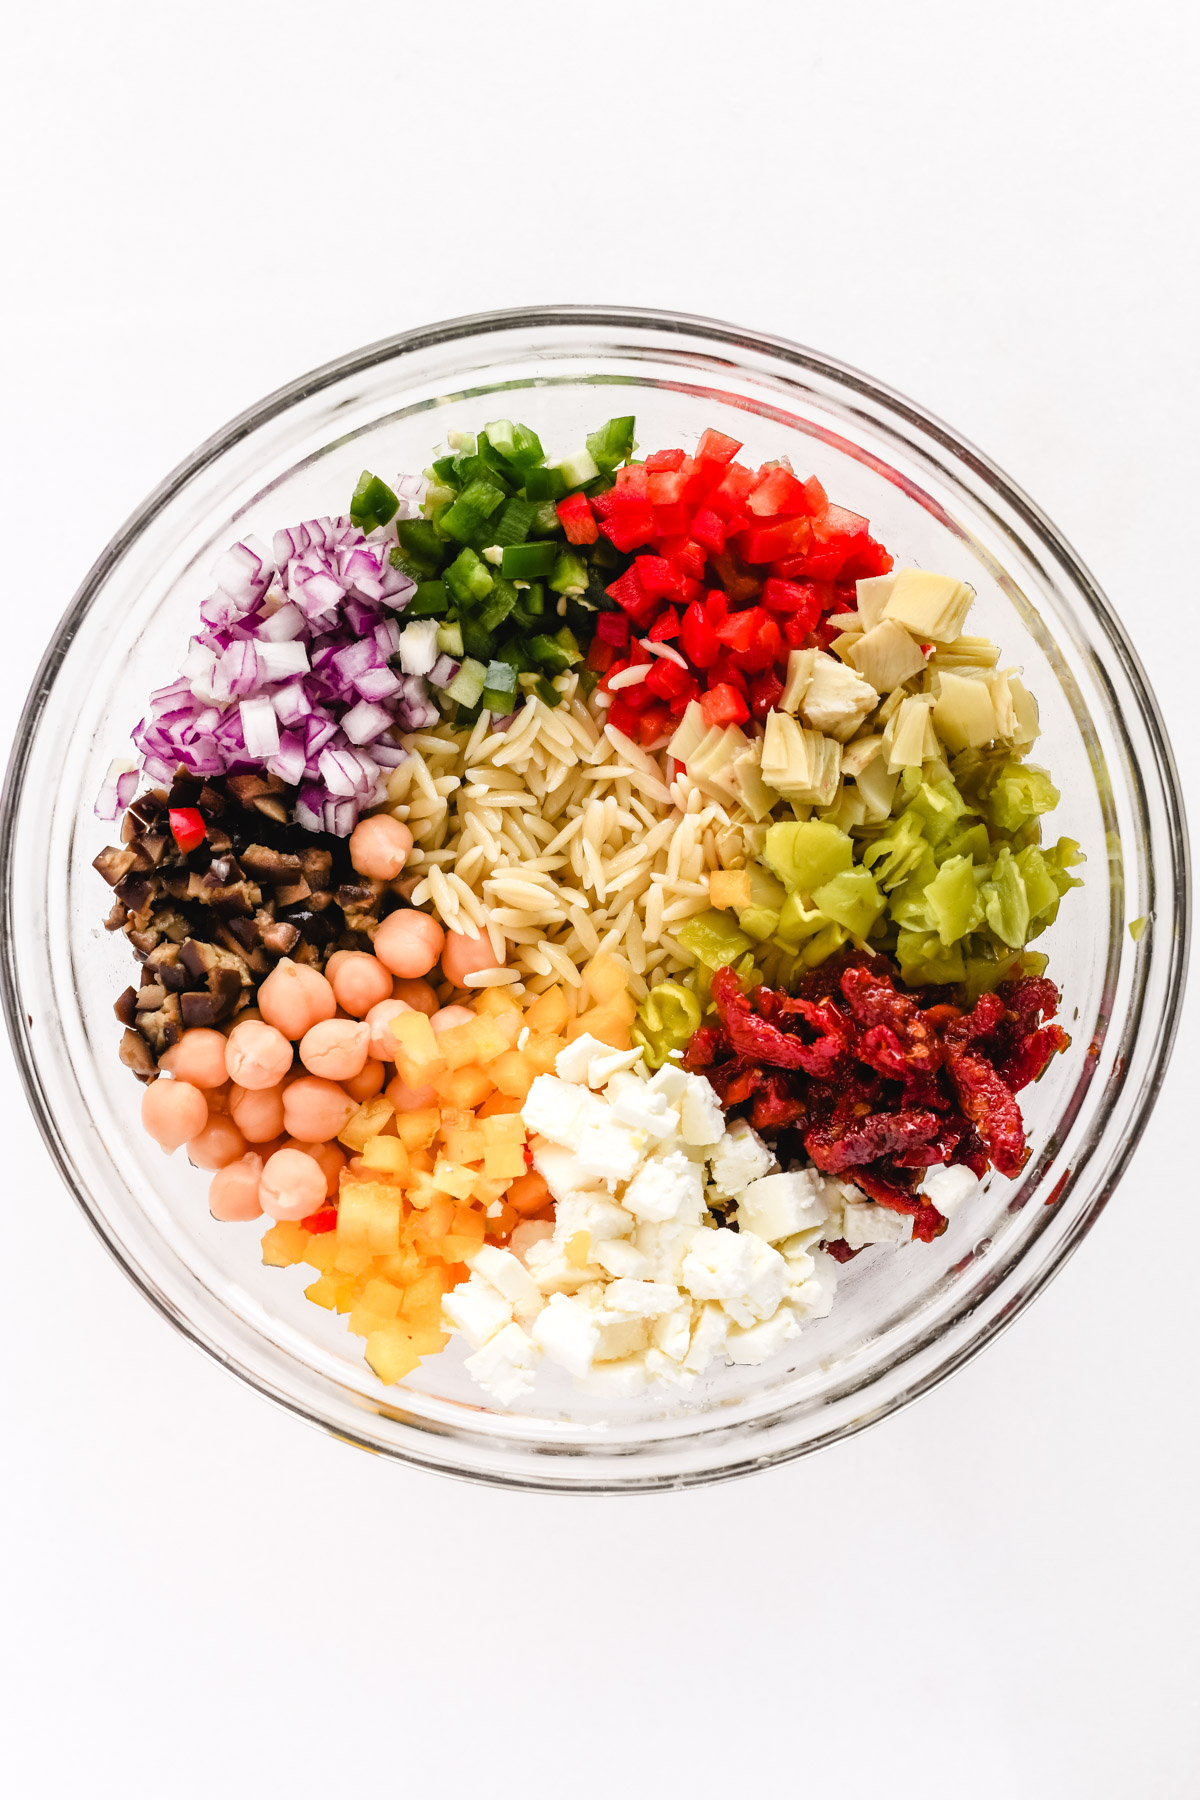 ingredients for Mediterranean orzo salad in a glass bowl